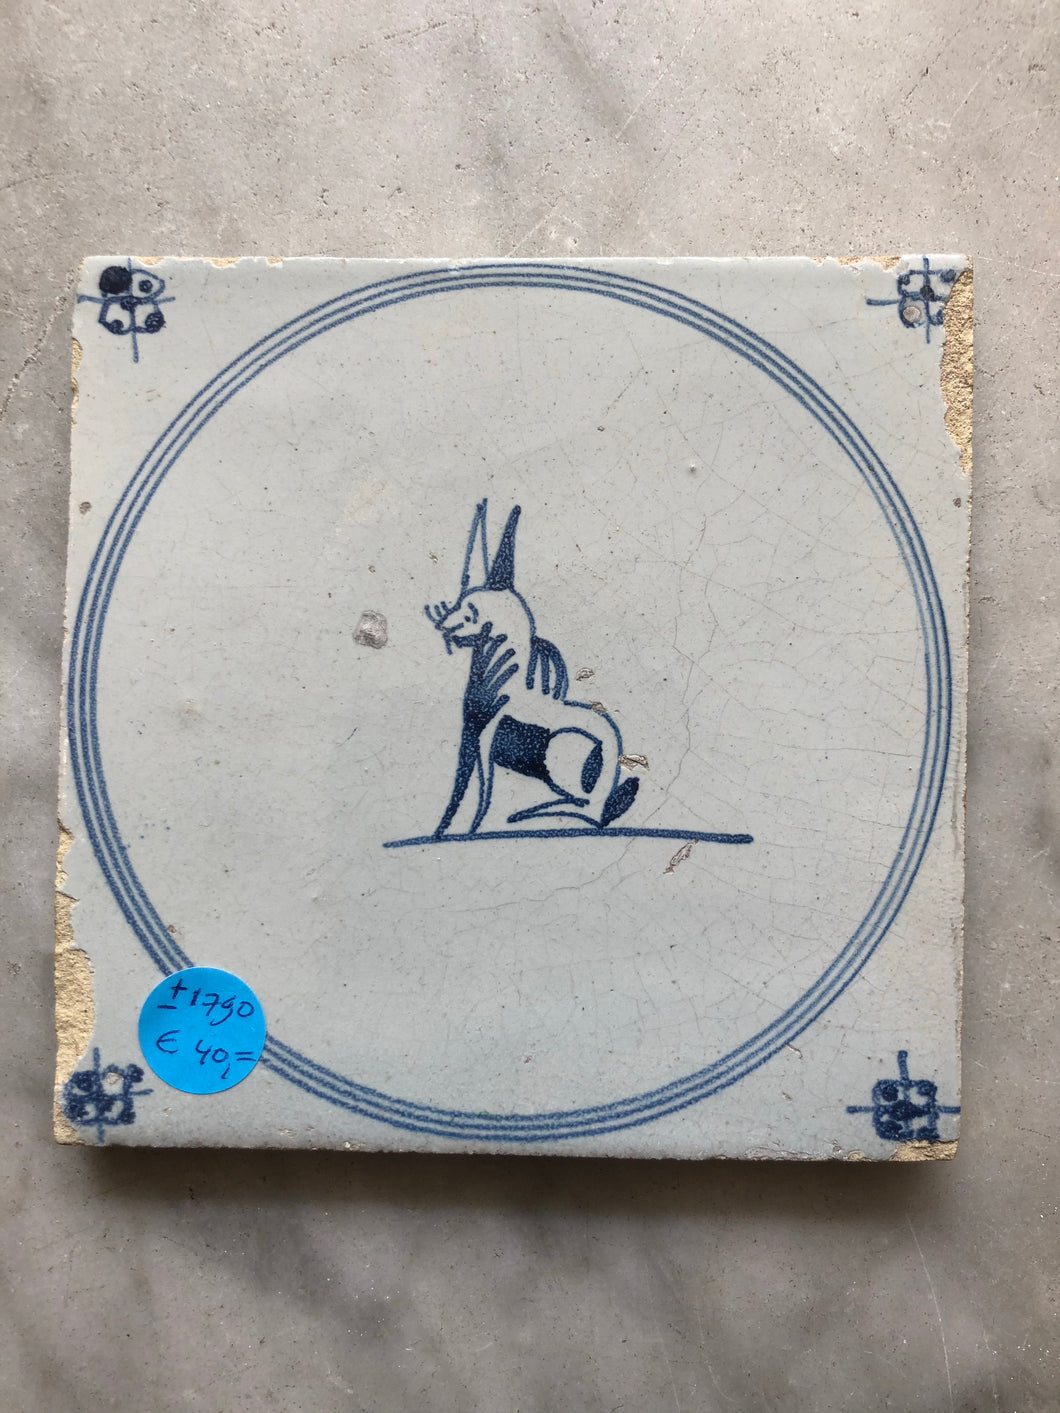 Delft 18 th century tile with animal